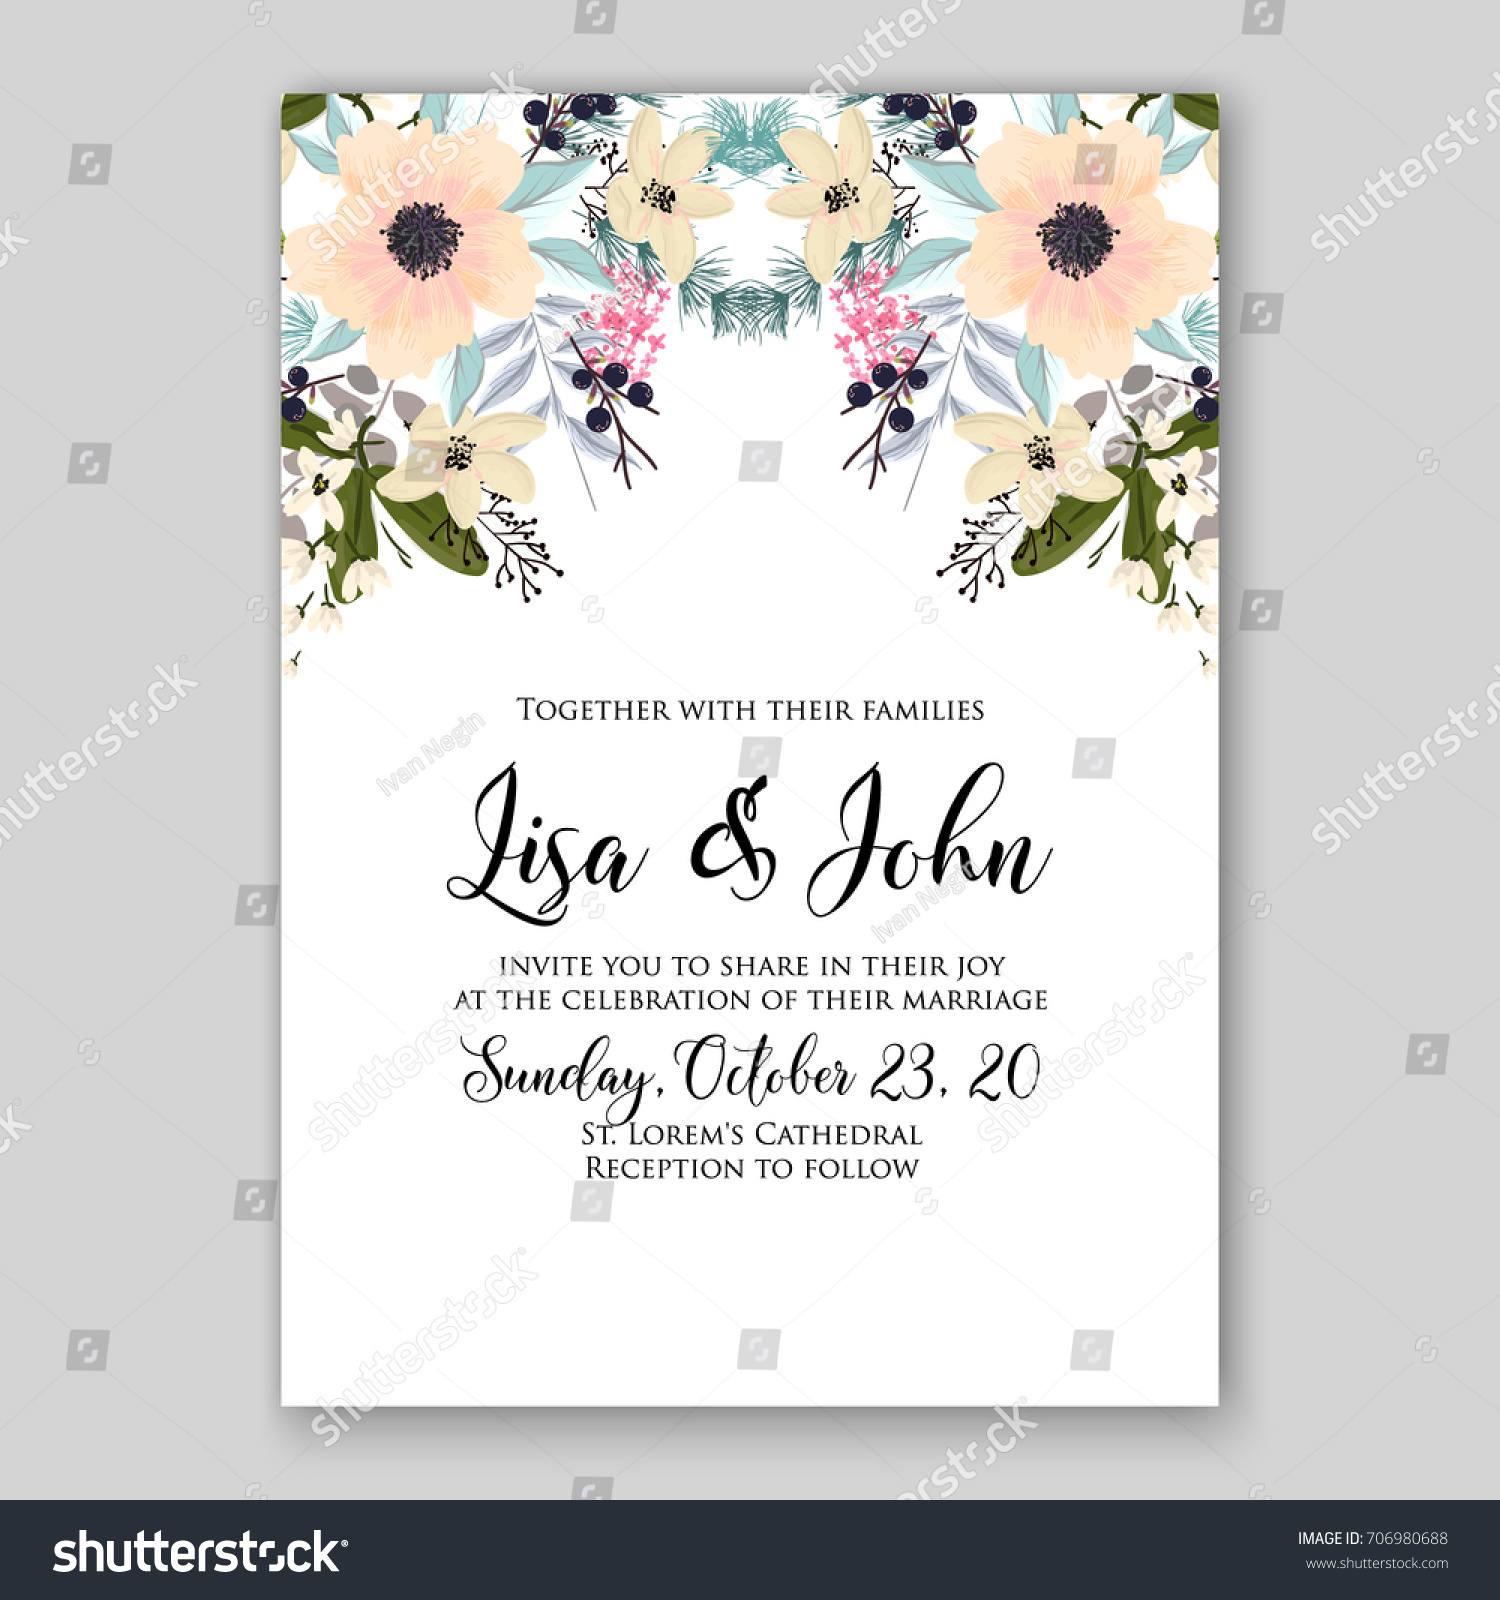 Wedding Invitation Autumn Floral Card Template Stock Vector ...